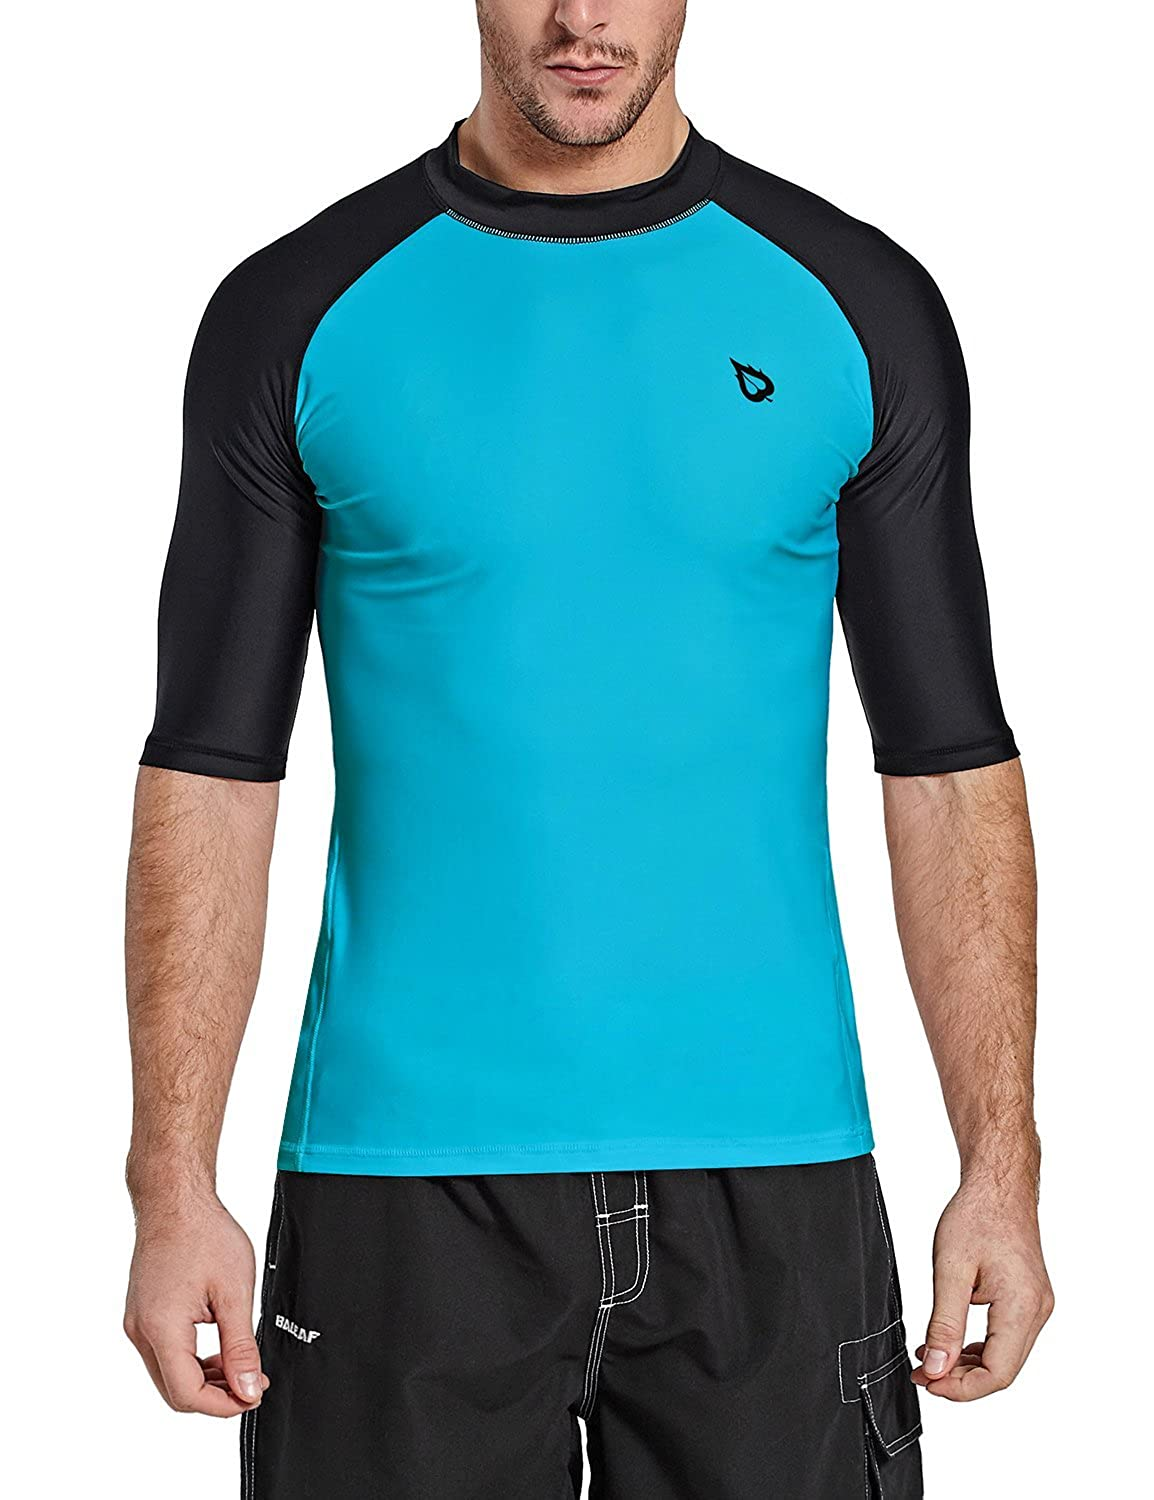 Baleaf Mens Short Sleeve Rashguard Swim Shirt UV Sun Protection UPF 50+